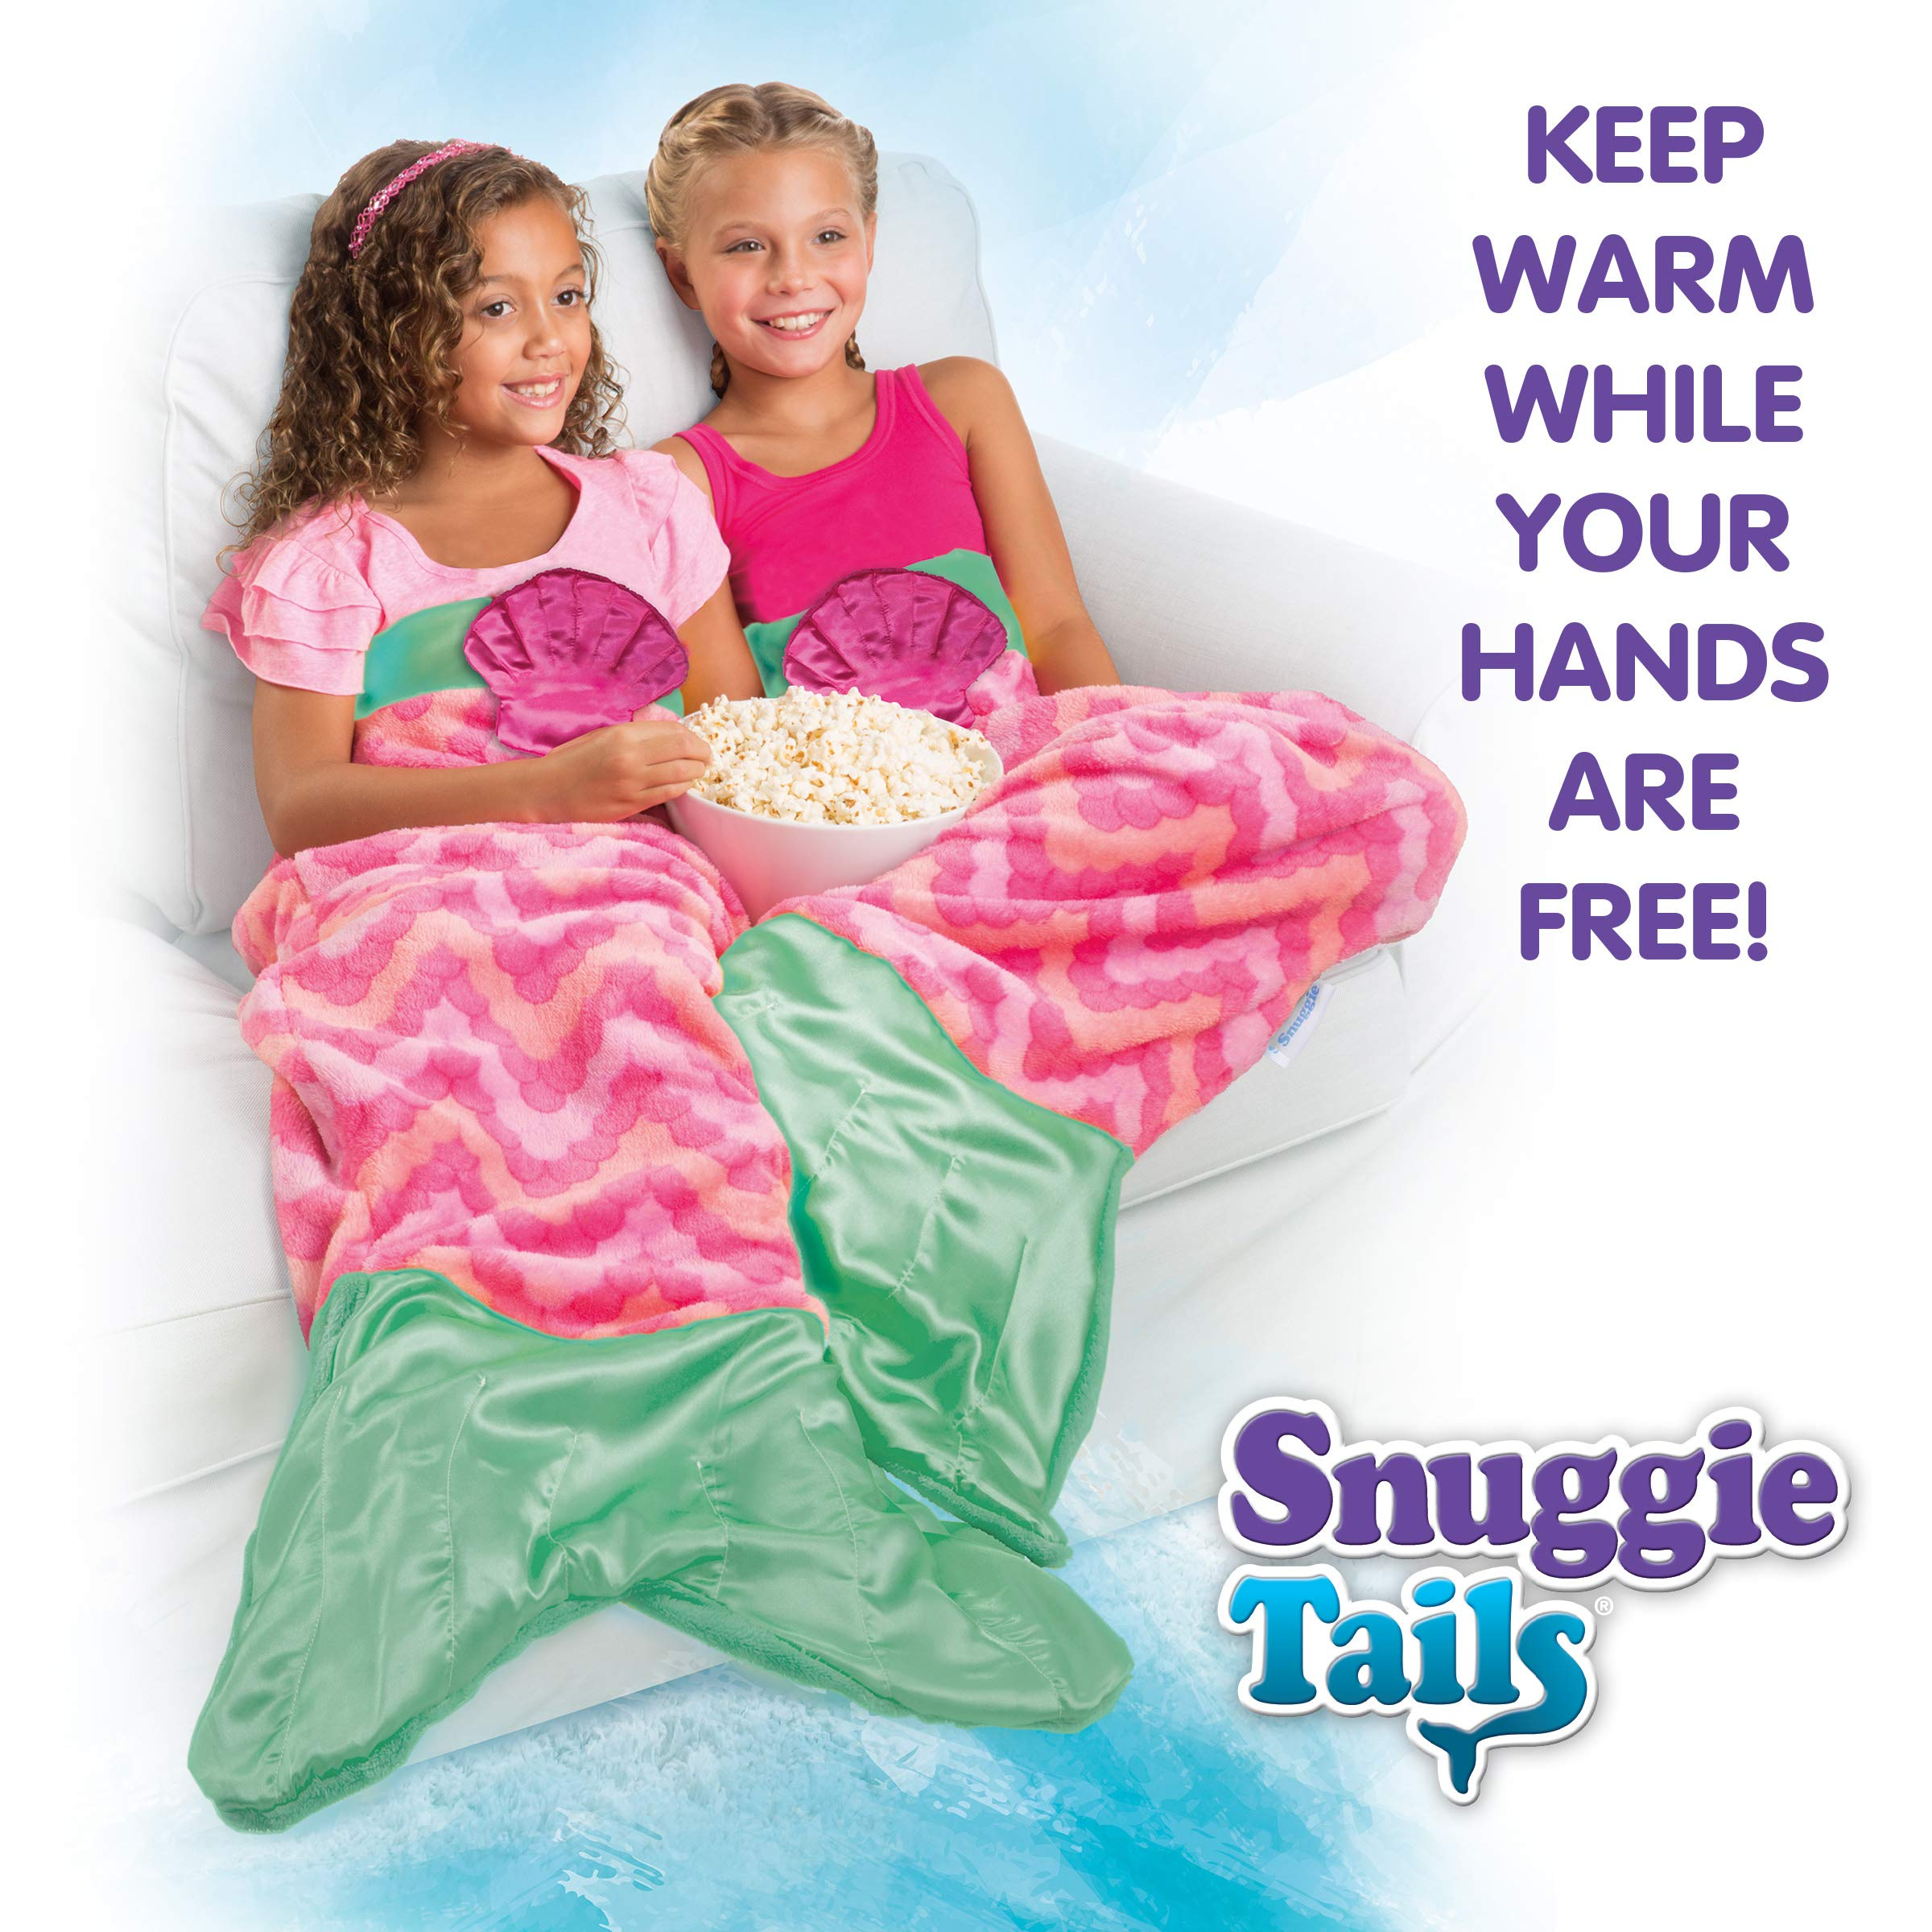 Snuggie Tails Allstar Innovations Mermaid Blanket for Kids (Pink), As Seen on TV by Snuggie Tails (Image #4)